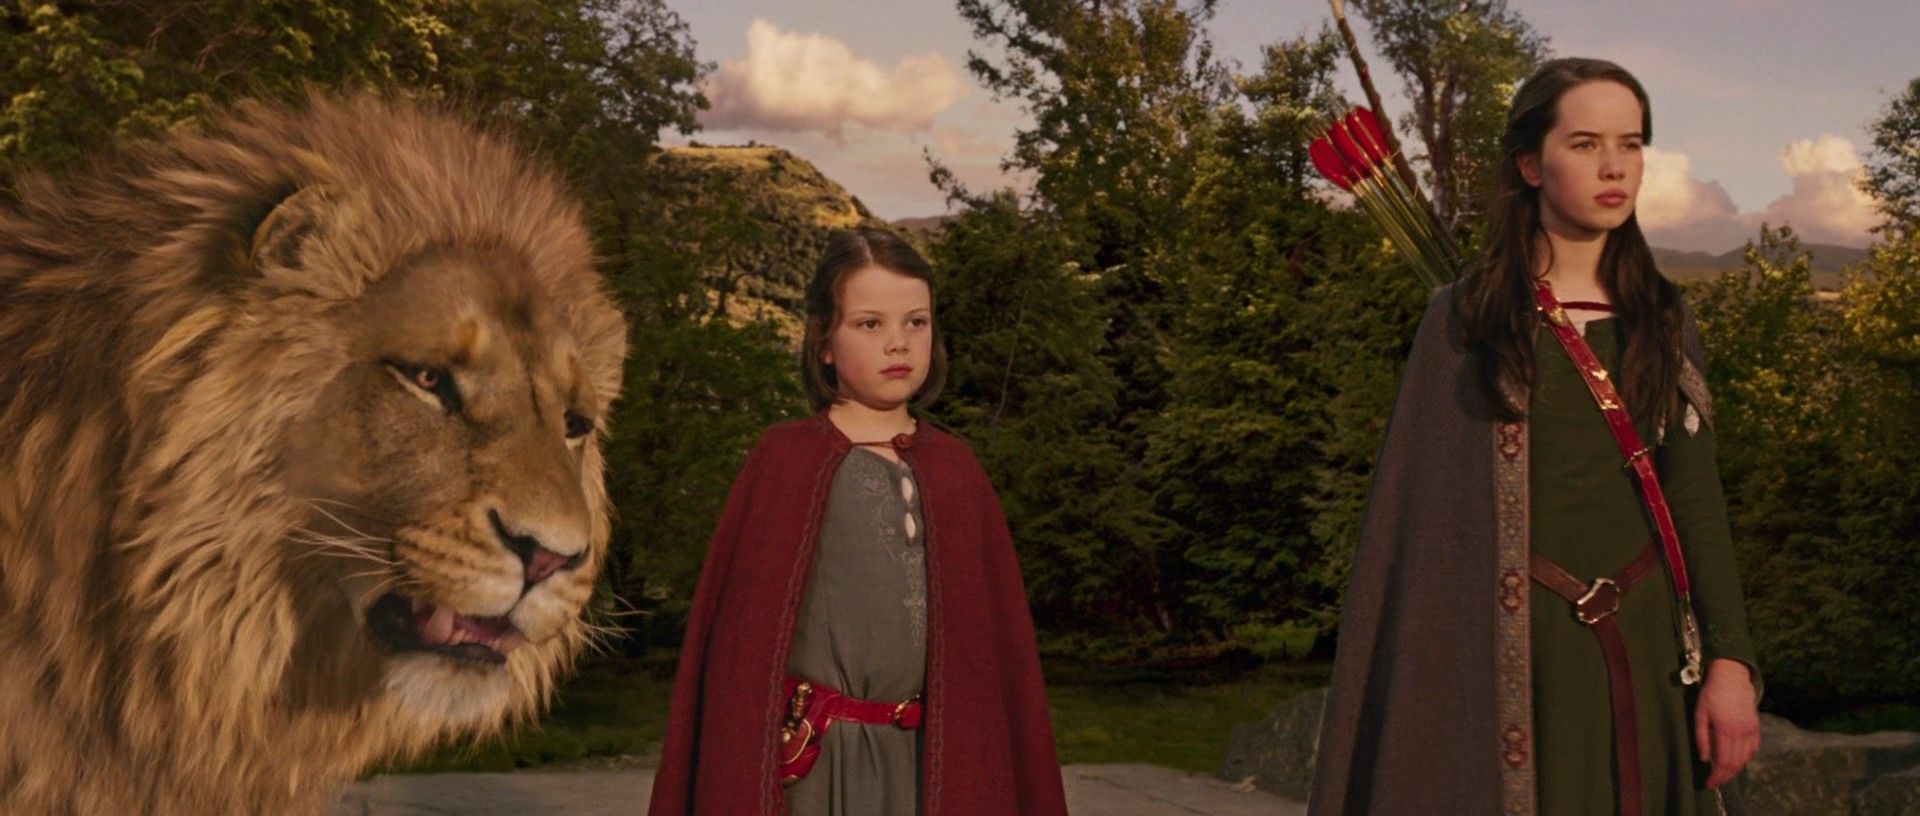 C S Lewis's story has already been told: why we don't need a new Narnia book